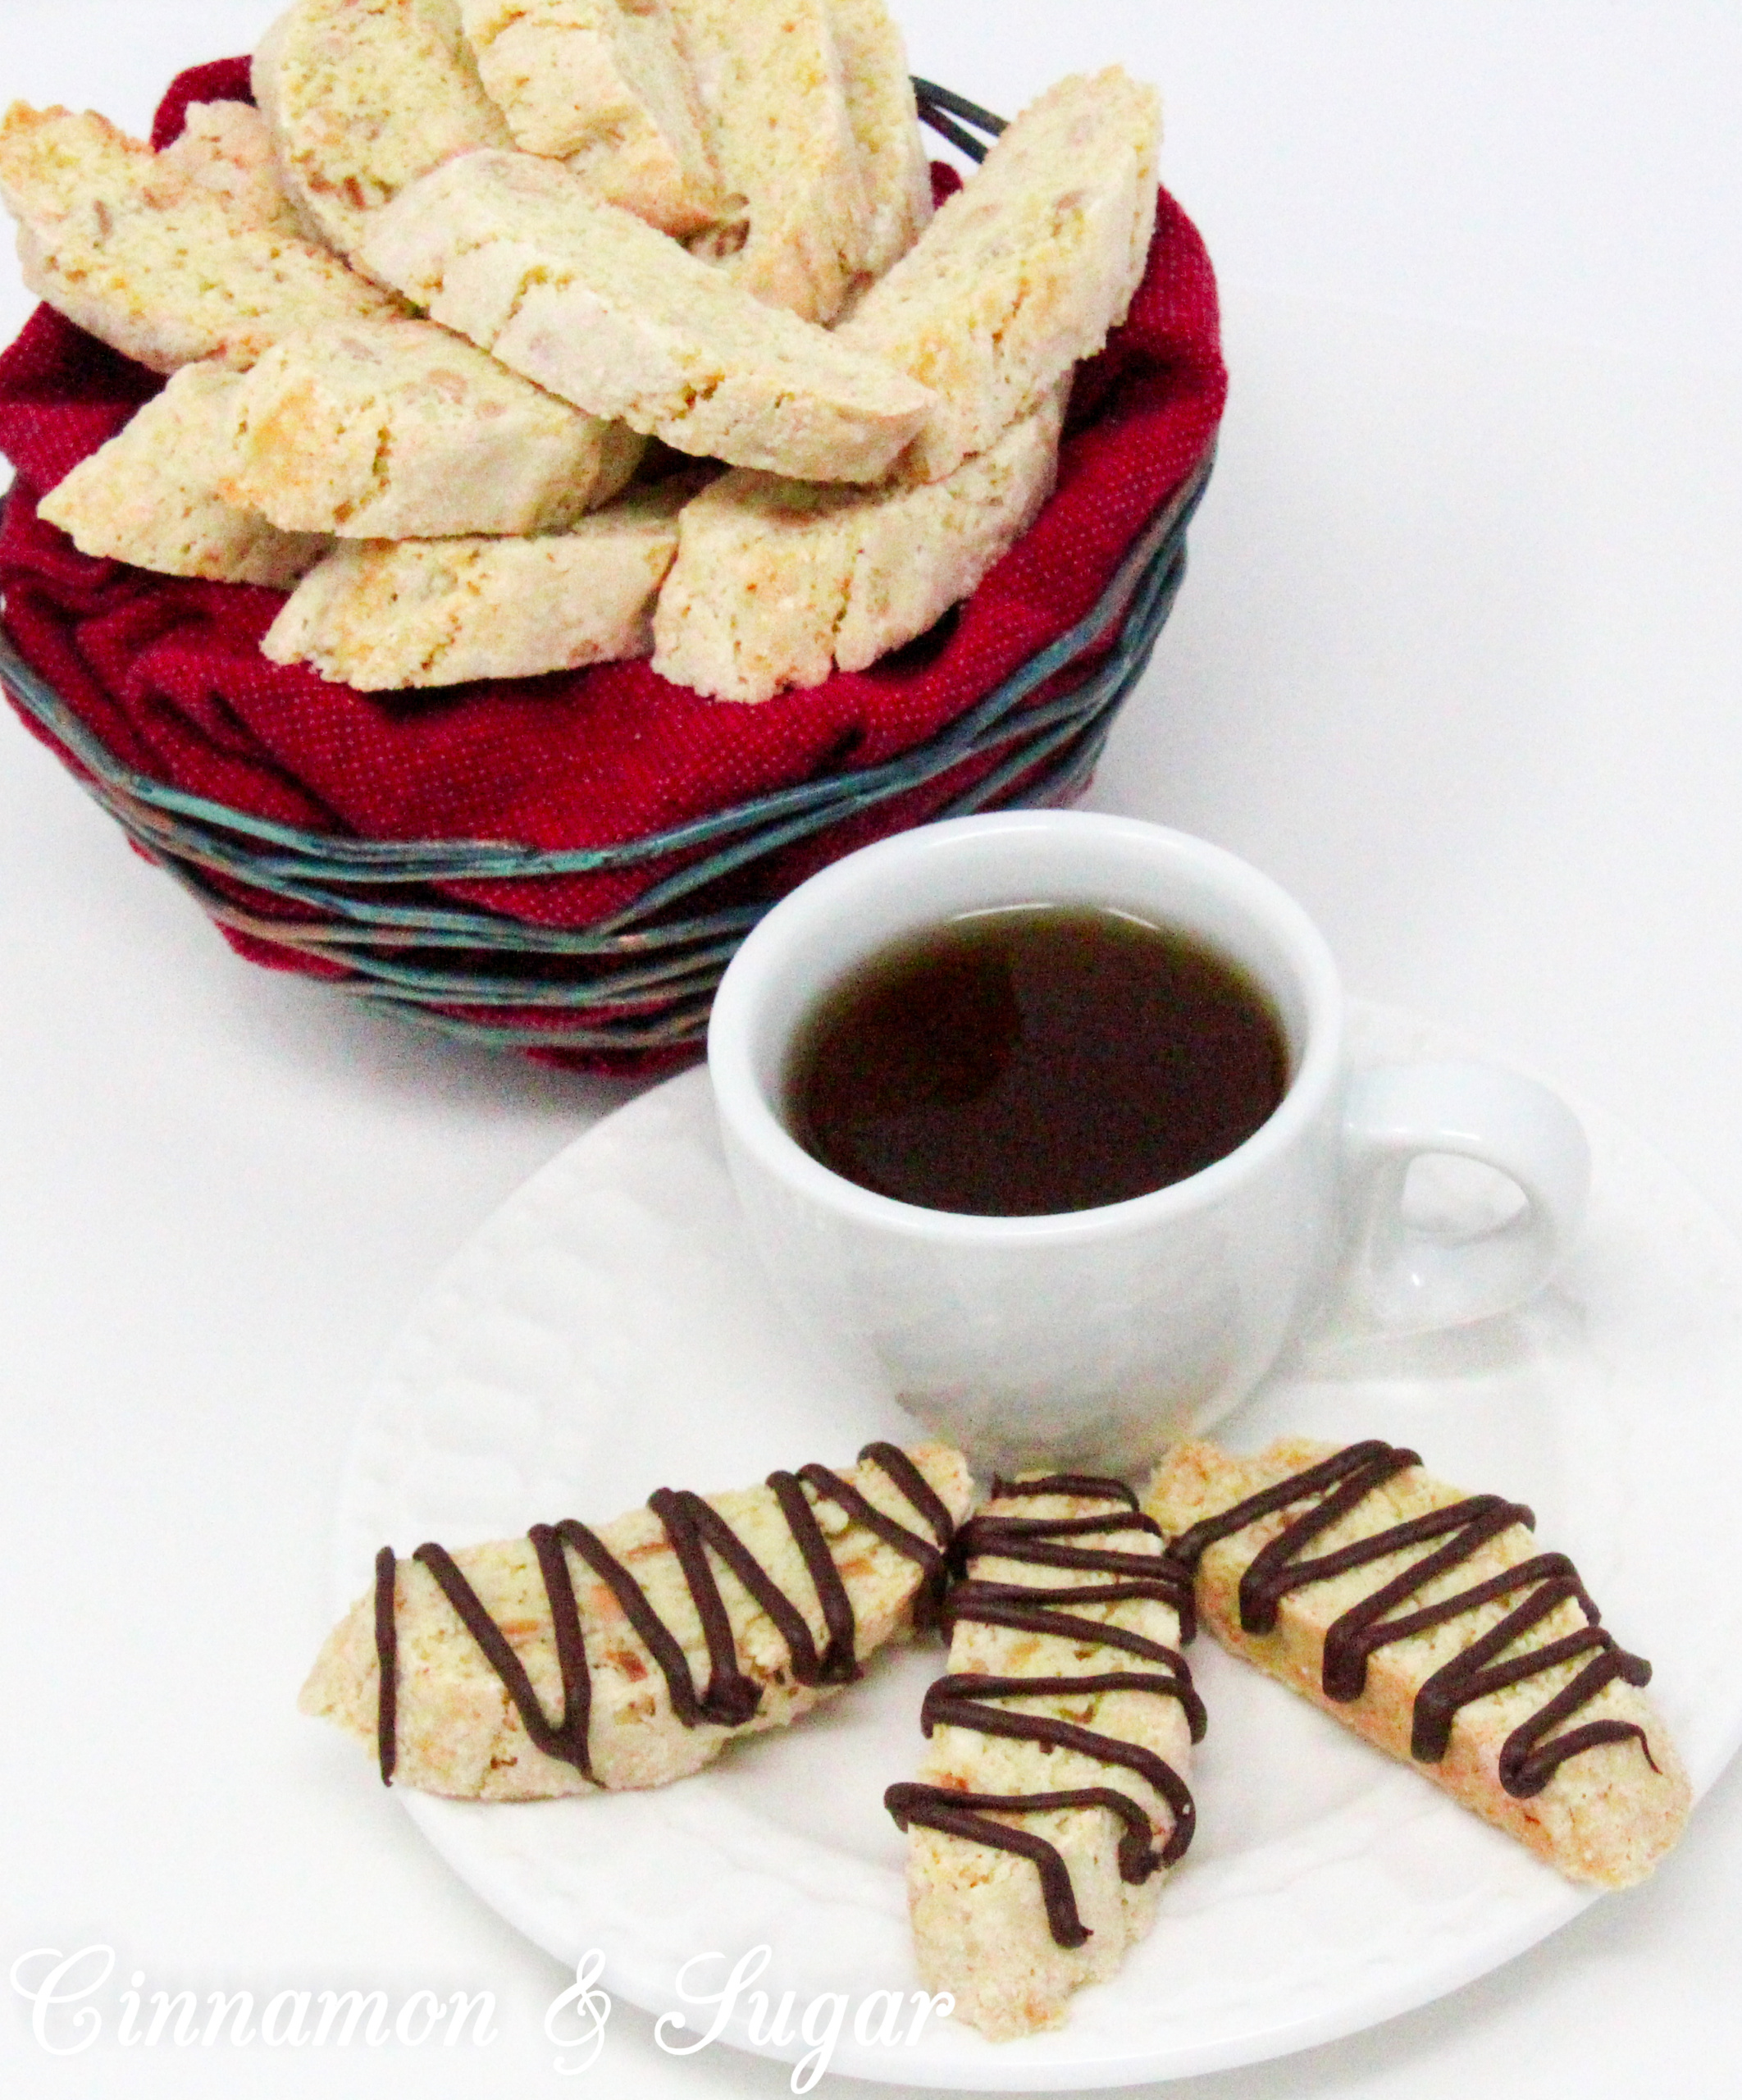 Crunchy, with a delicate almond flavor thanks to a generous amount of toasted almonds, these traditional Almond Biscotti don't contain any butter or oil. Perfect for dunking in your favorite hot beverage! Recipe shared with permission granted by Leslie Budewitz, author of THE SOLACE OF BAY LEAVES.